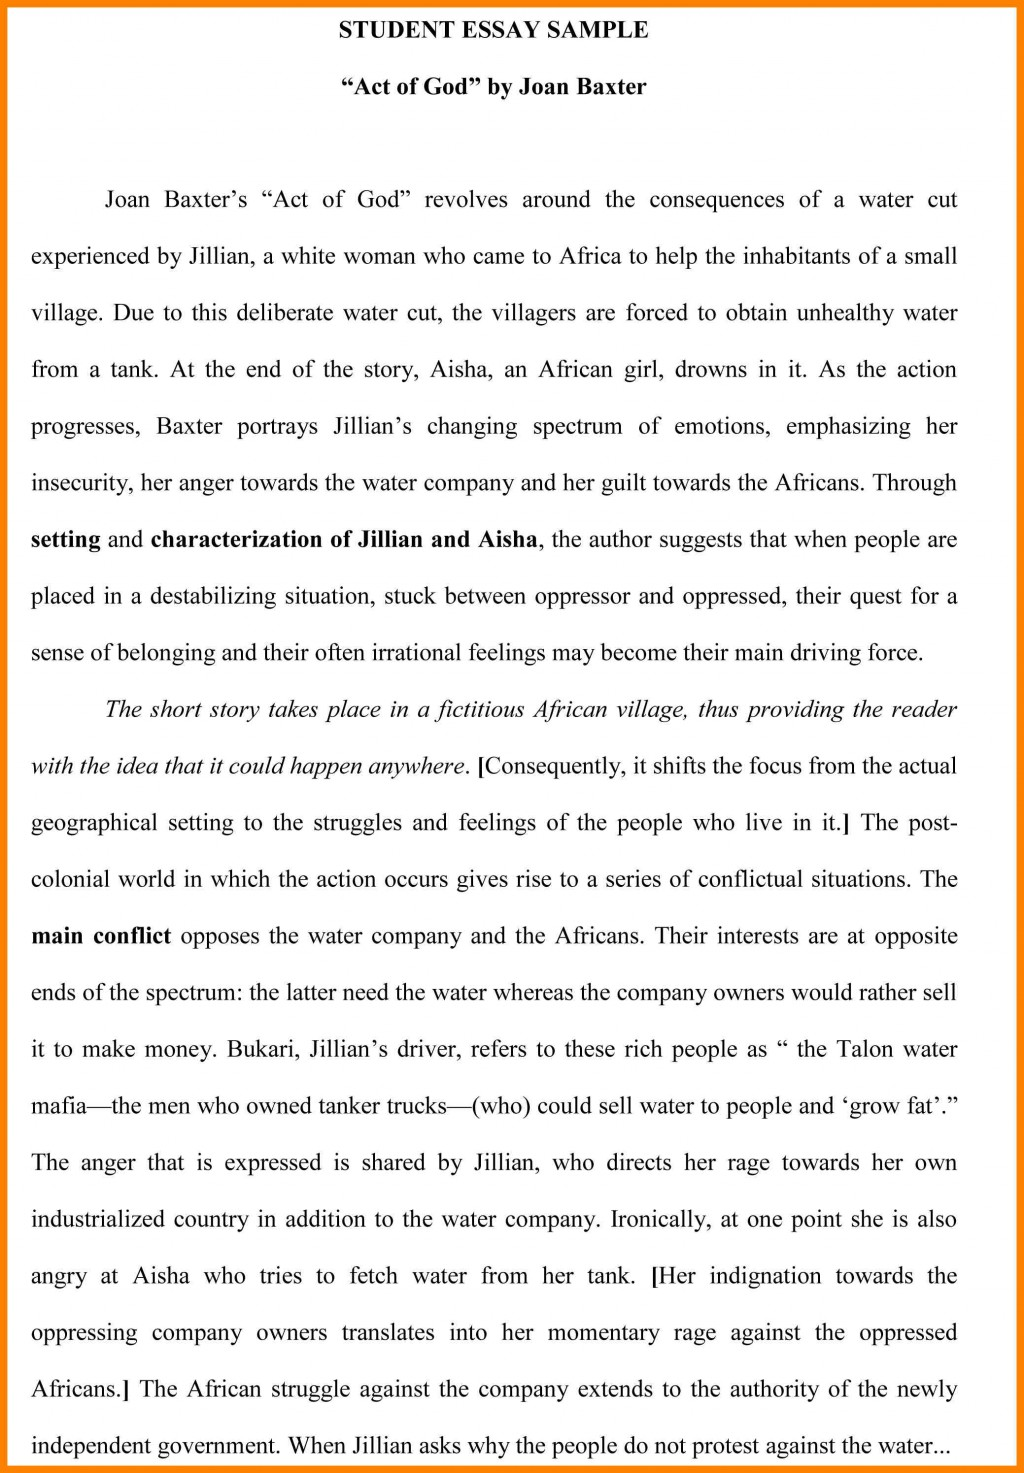 008 How To Write Better Essays Essay Example Examples Of Process Pdf Good Student Download Descriptive Great Law Steve Foster Lauren Awesome Can I In English Literature Greetham Large